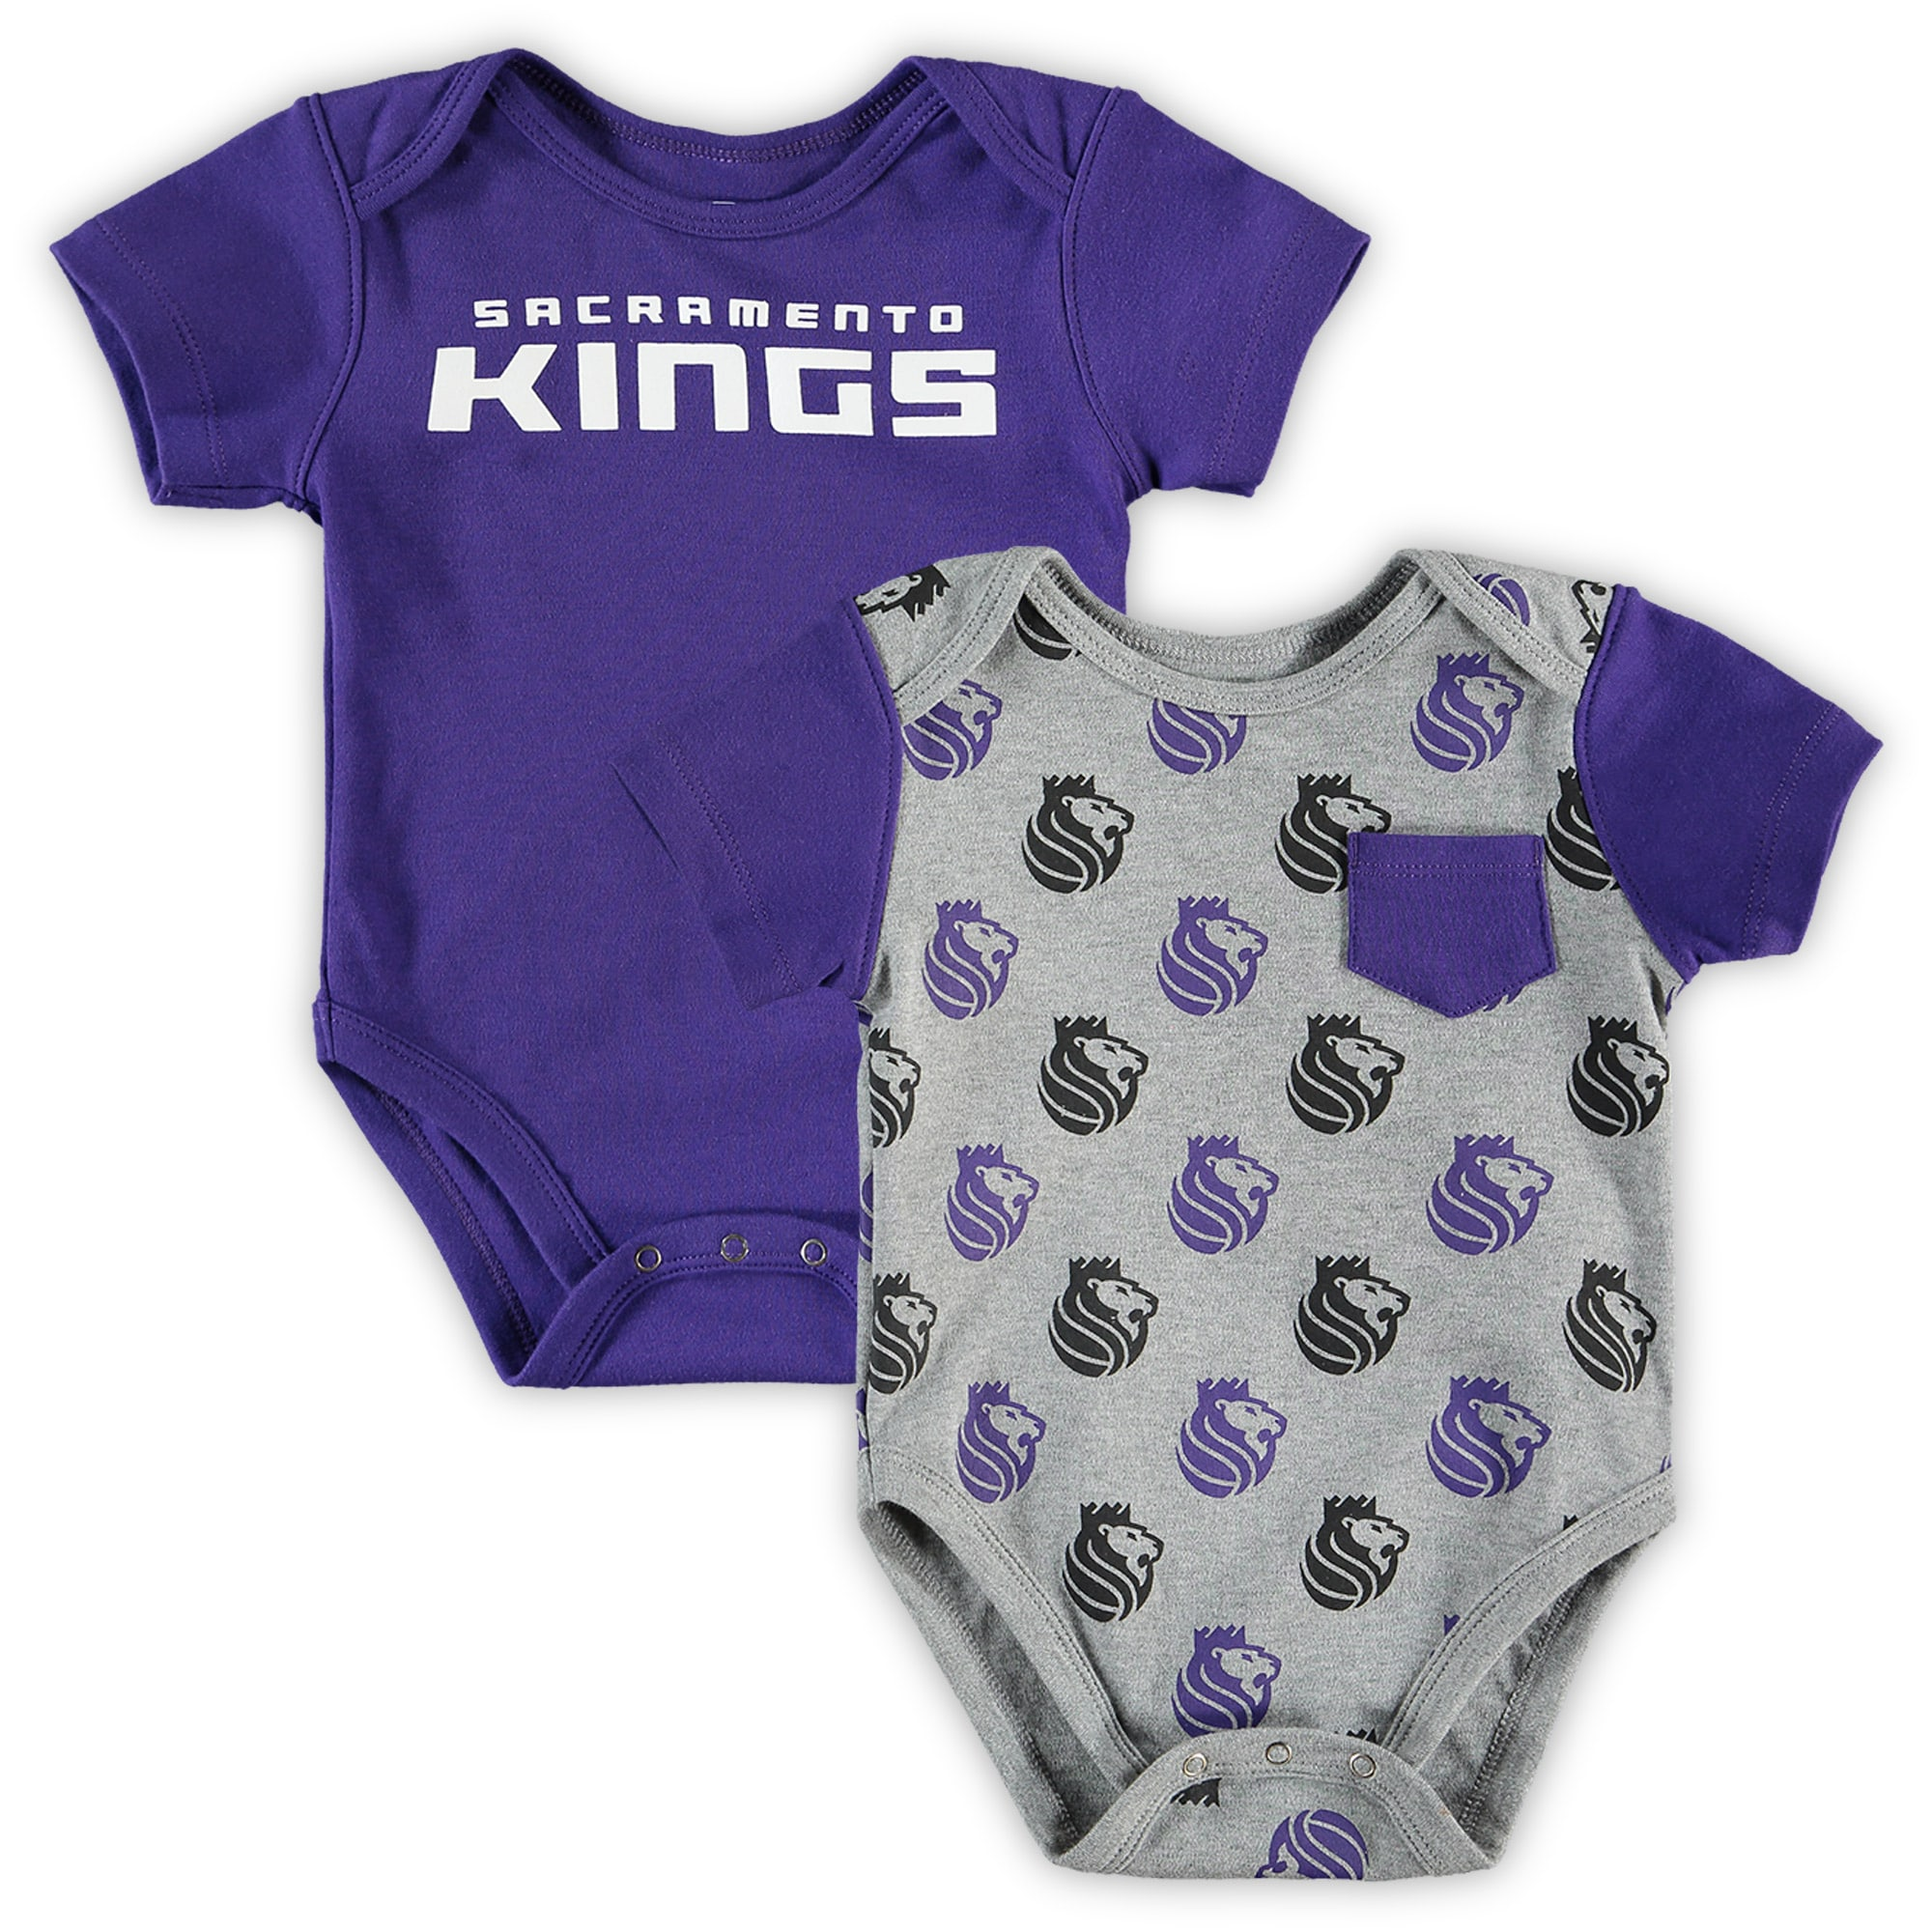 Sacramento Kings Infant Little Baller 2-Pack Bodysuit Set - Purple/Heathered Gray